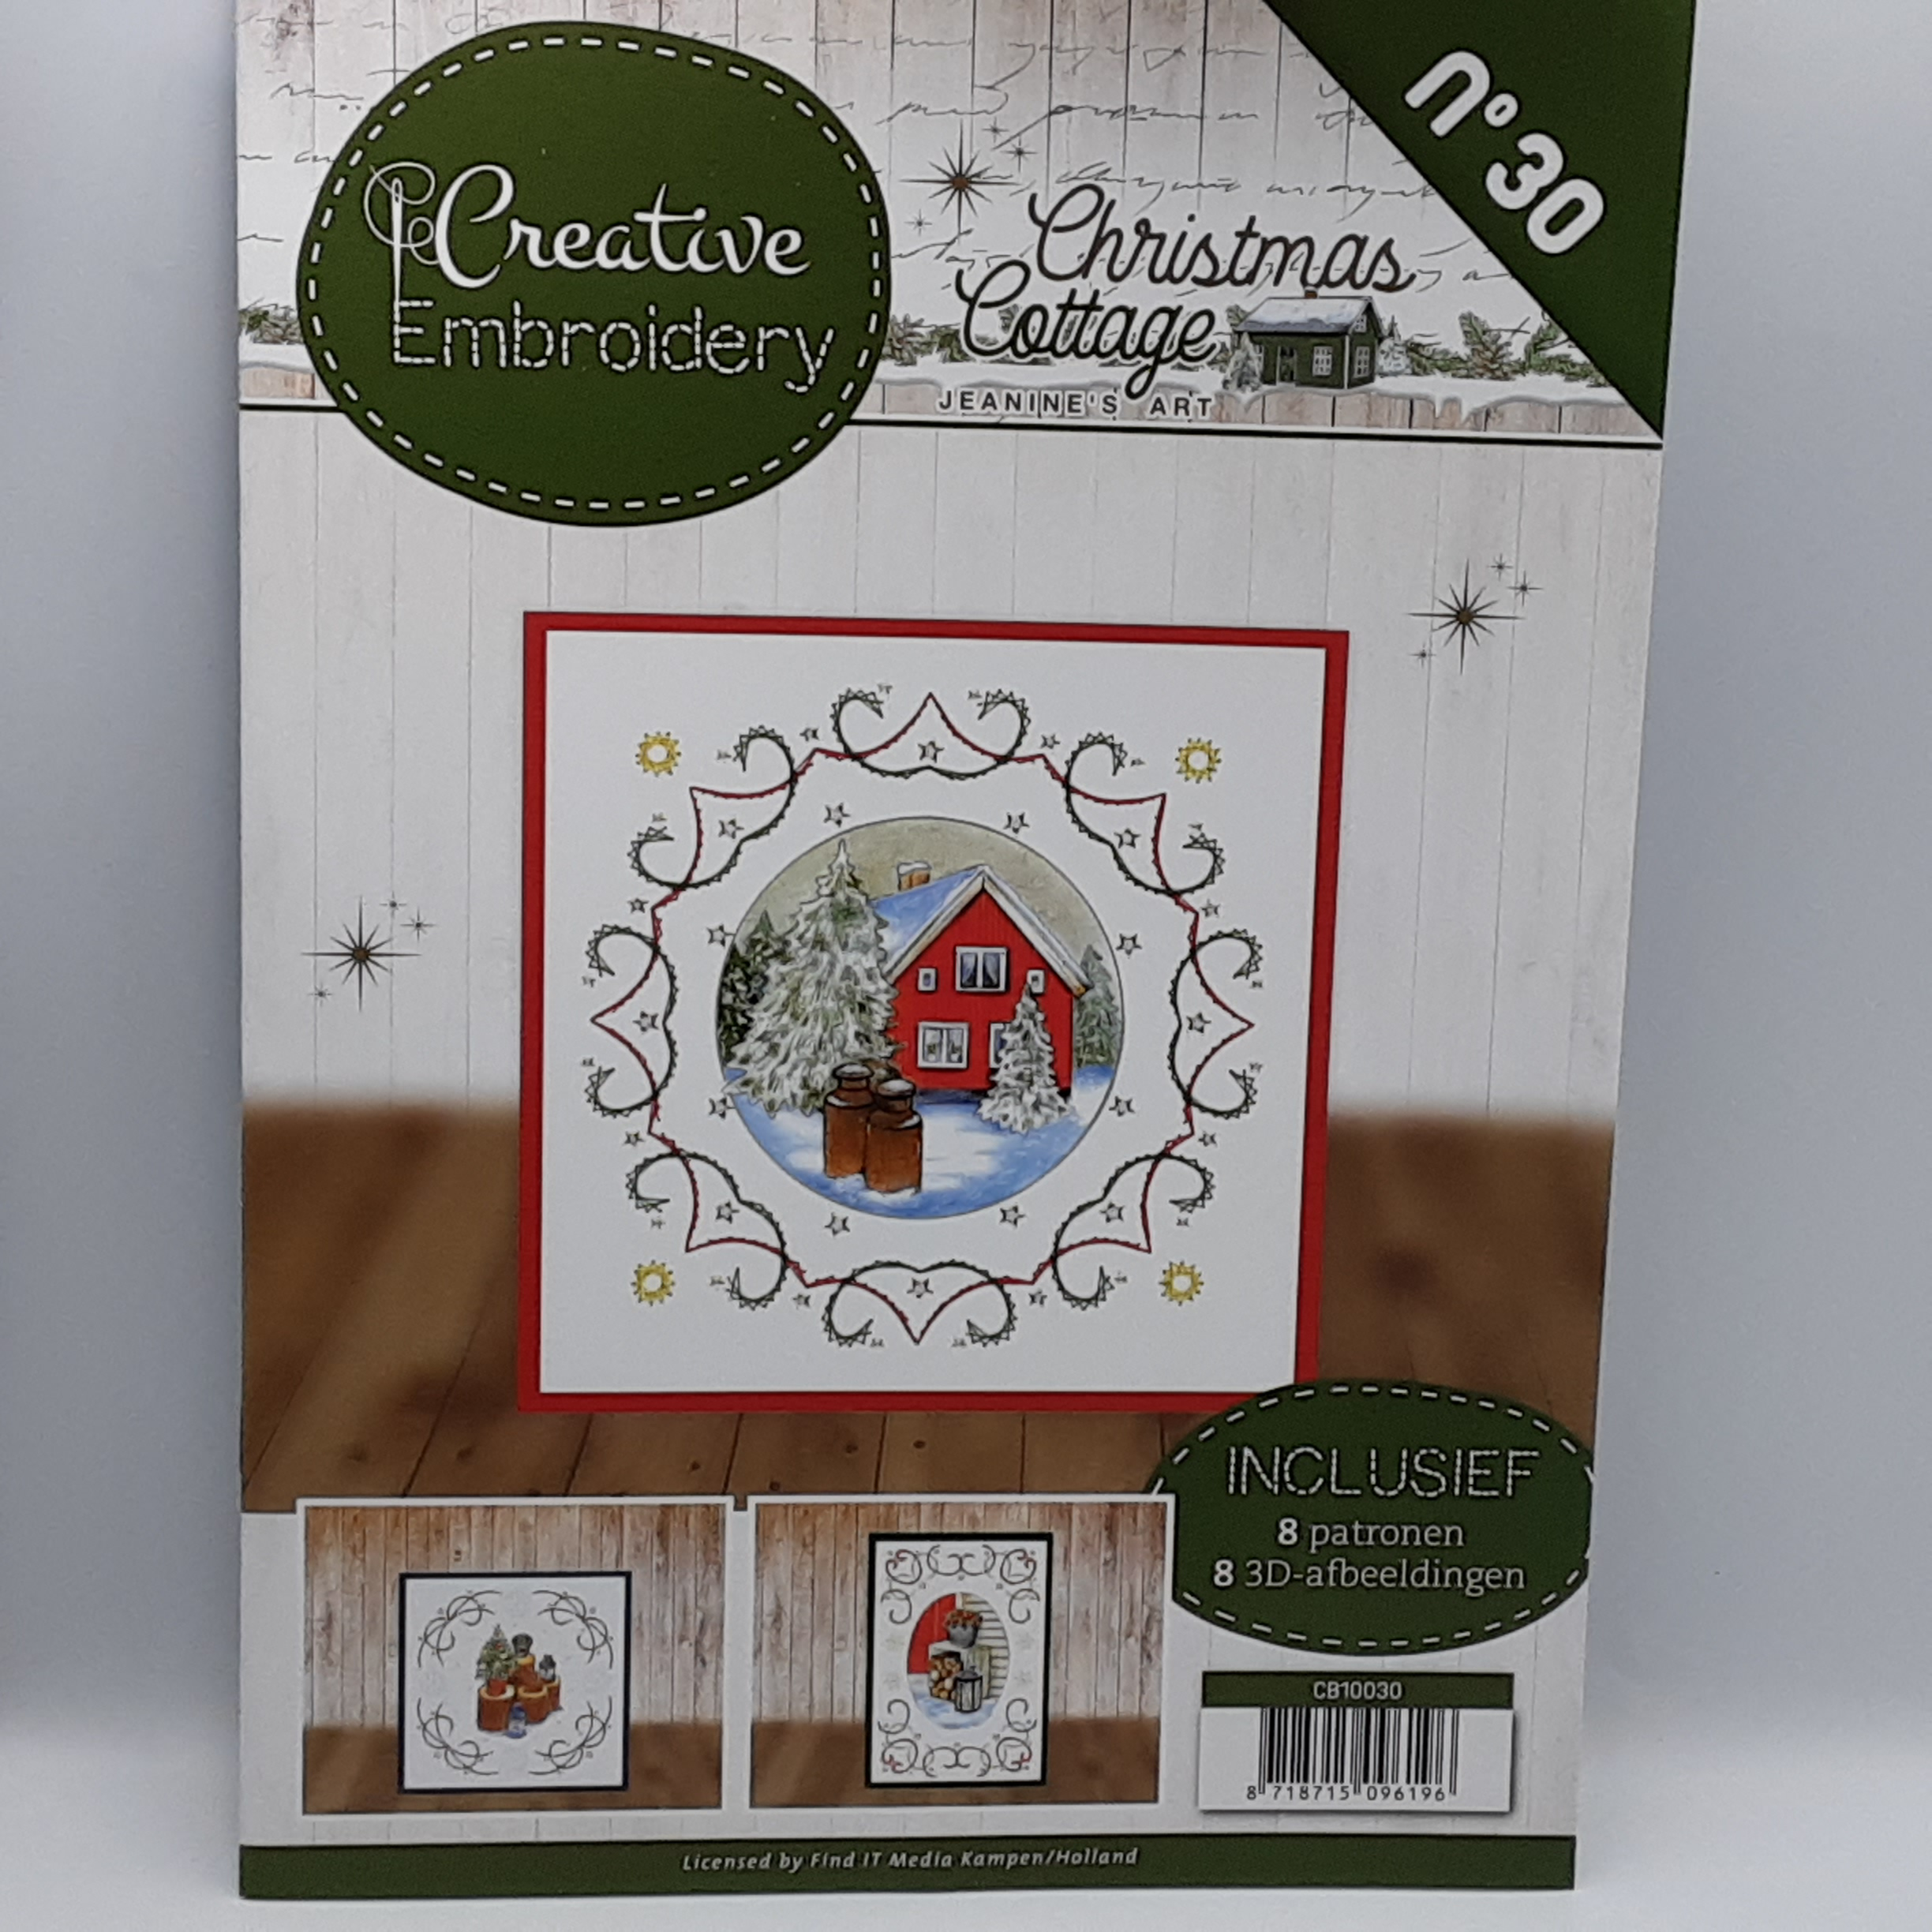 creative embroidery 30 christmas cottage